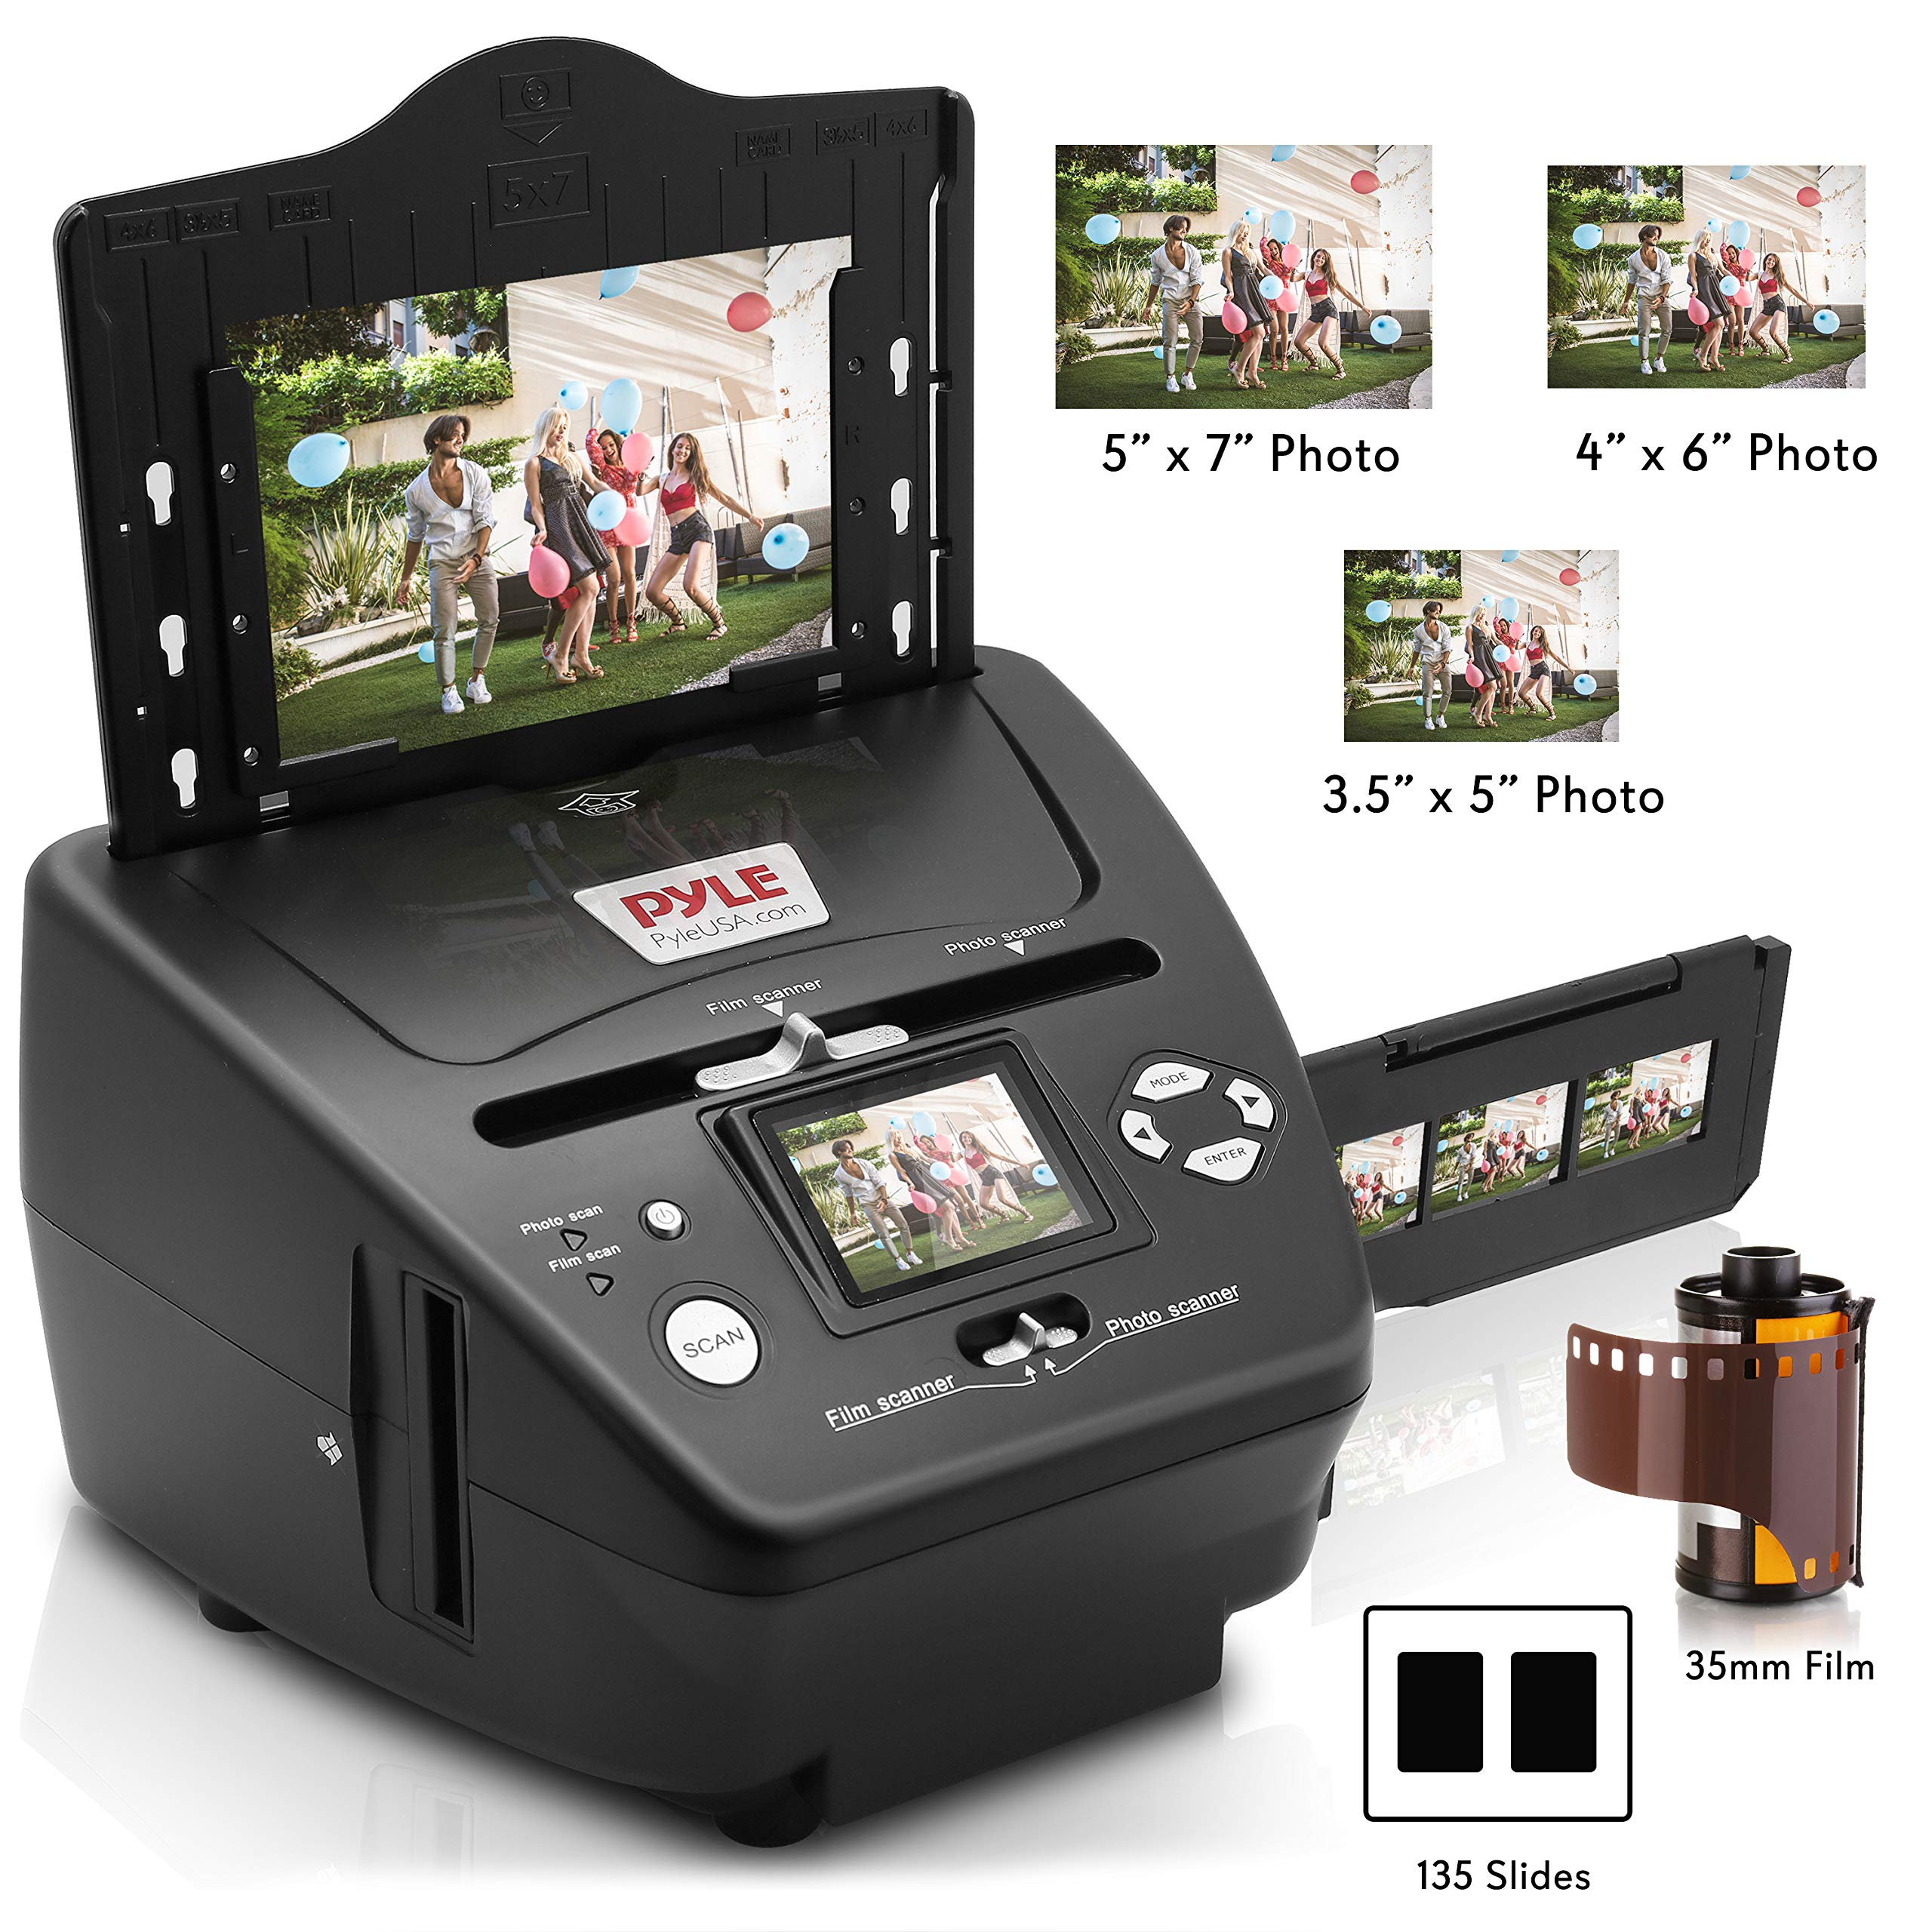 Digital 3-in-1 Photo, Slide and Film Scanner - Convert 35mm Film Negatives & Slides - With HD 5.1 MP - Digital LCD Screen, Easy to Use by Pyle